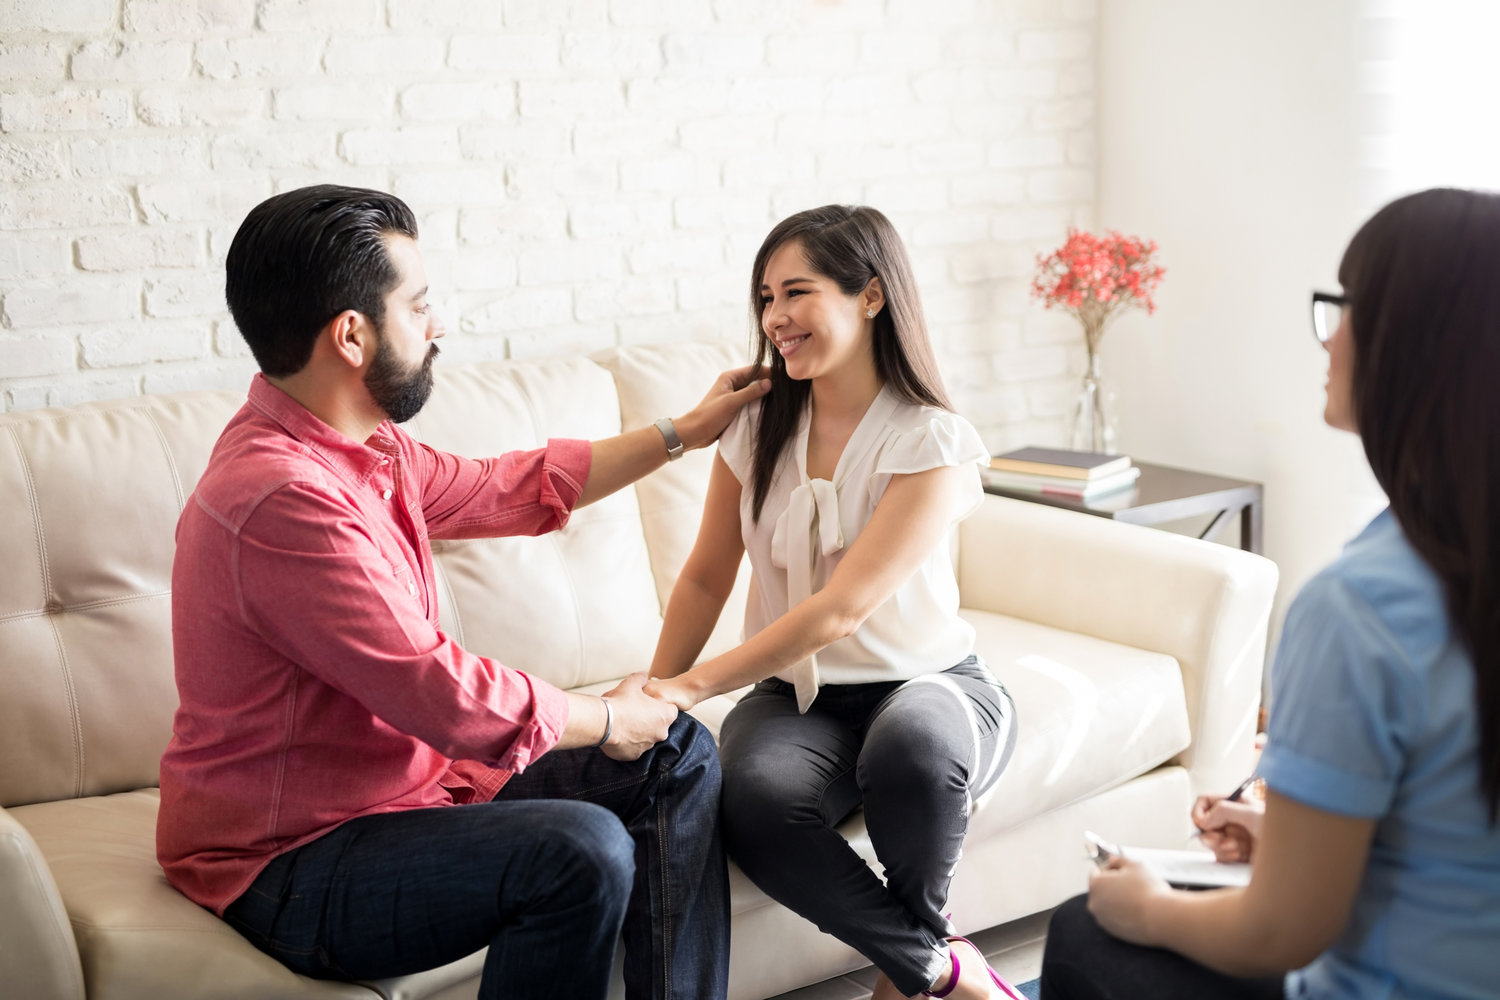 San Francisco Bay Area's Top-Rated Couples & sex Therapy - Licensed Psychotherapists, Certified Sex Therapists, Clinical Psychologists, Sexologists, and Certified Relationship and Sexual Empowerment Coaches.